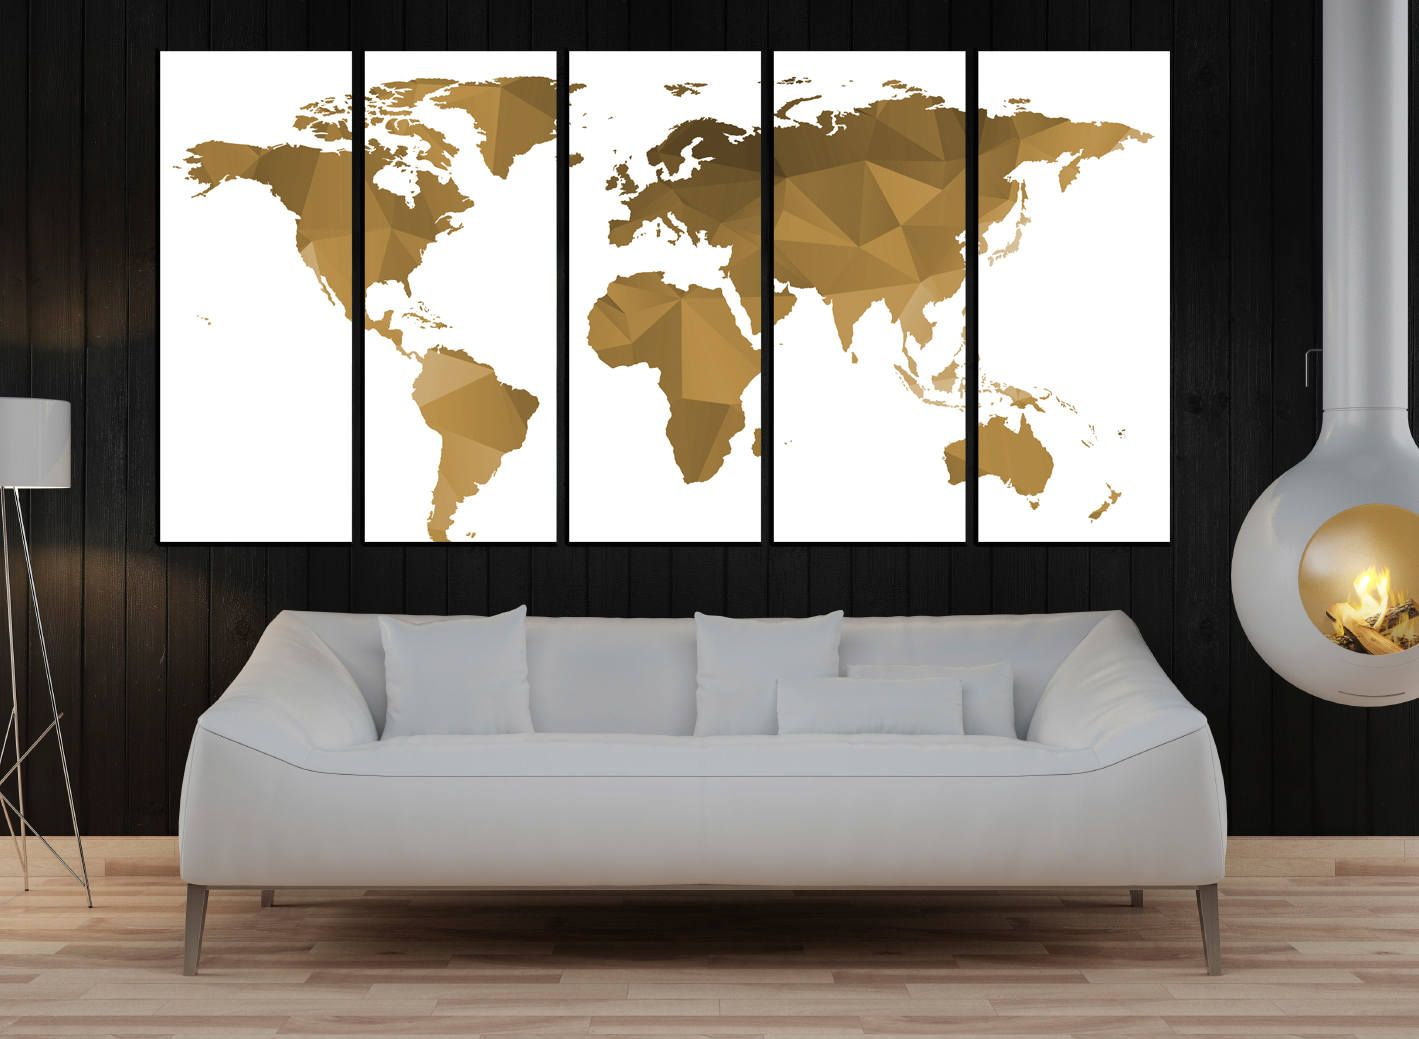 World map with big text for kids box canvas and poster print 901 big modern worldmap pinboard king in and out map big world map canvas gumiabroncs Gallery